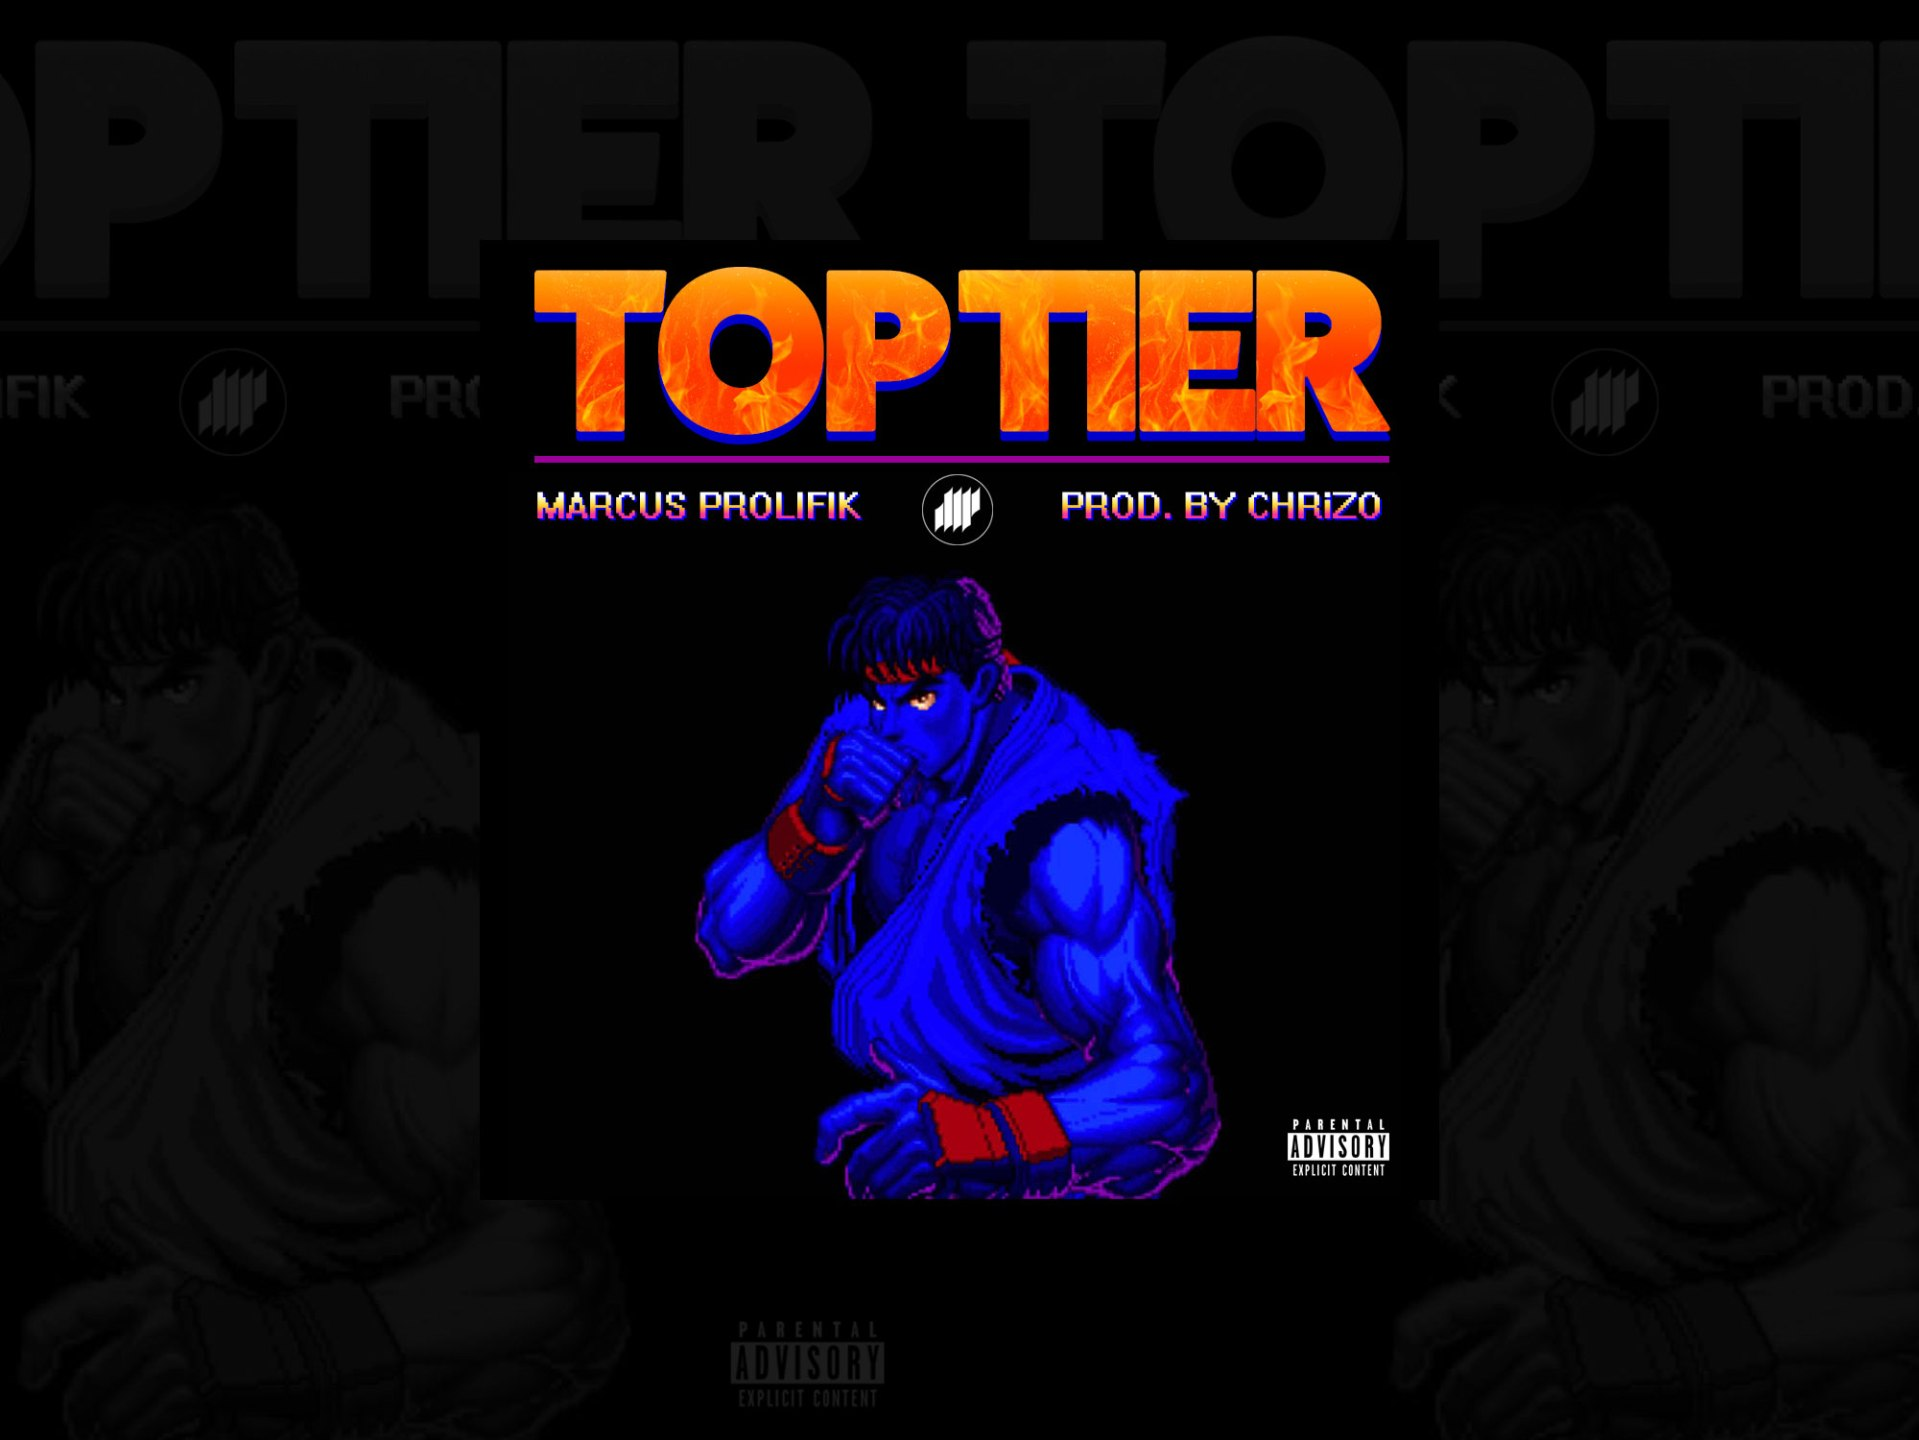 Download Top Tier for FREE